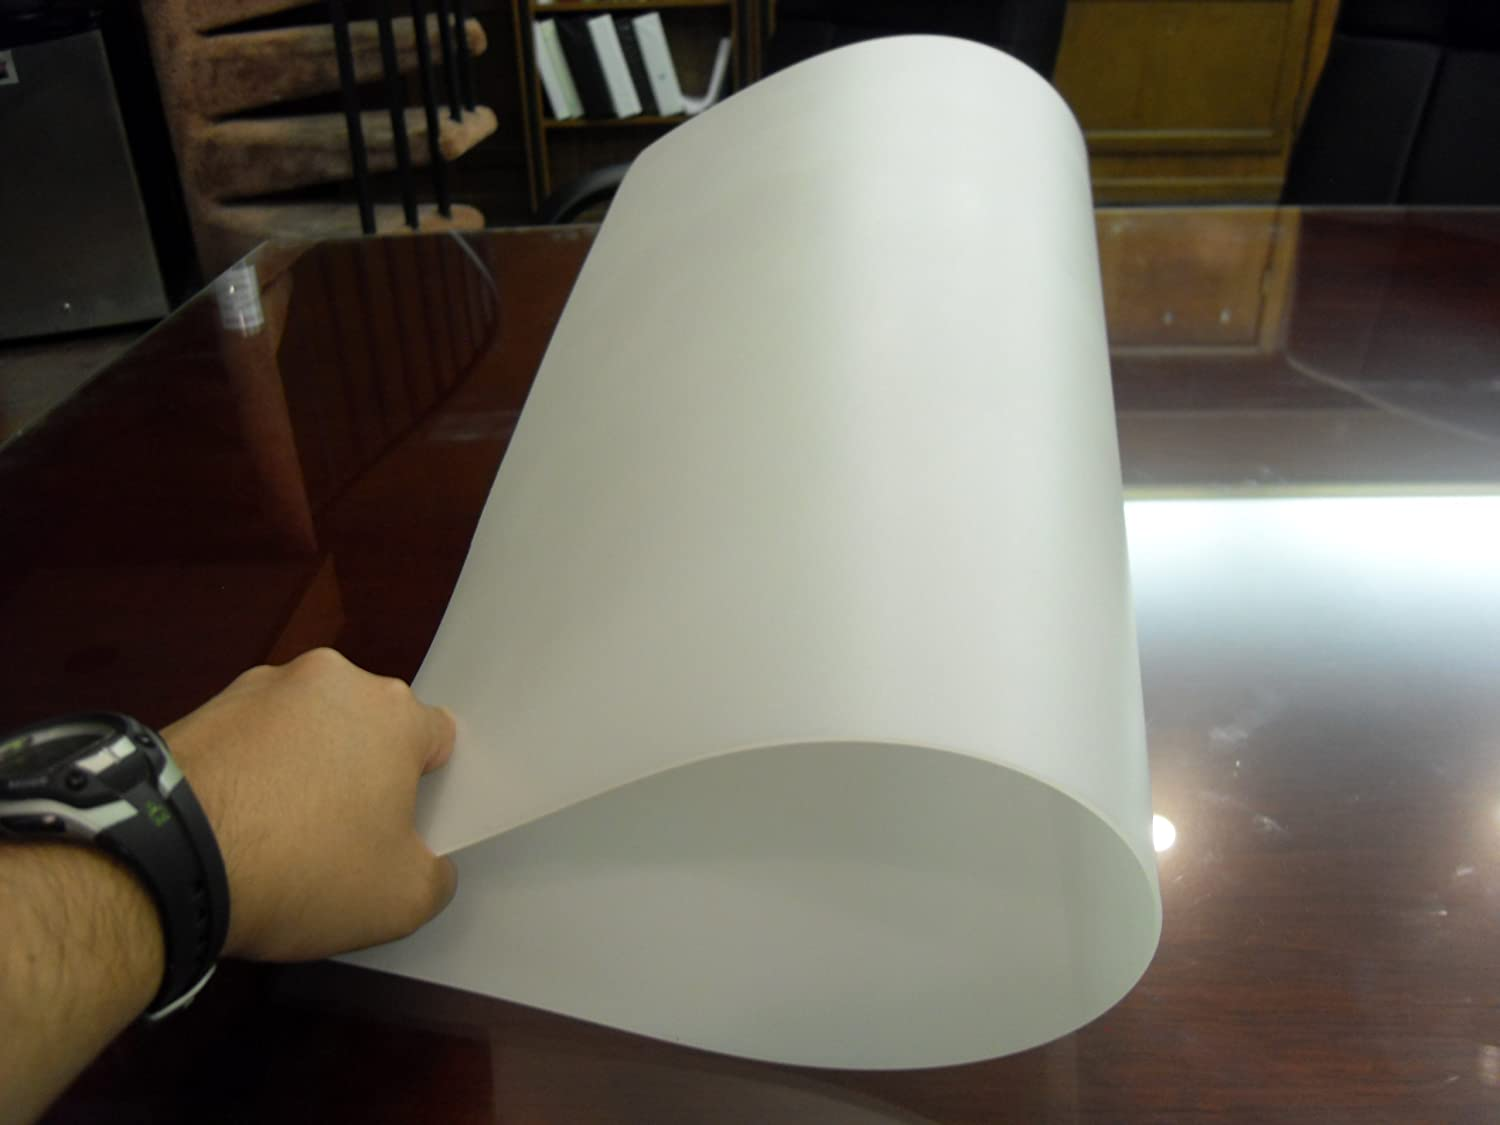 1 Thick Flexible Lightweight 24x24x1/16 Translucent Polyethylene Plastic Stencil Template Sheet 4336894133